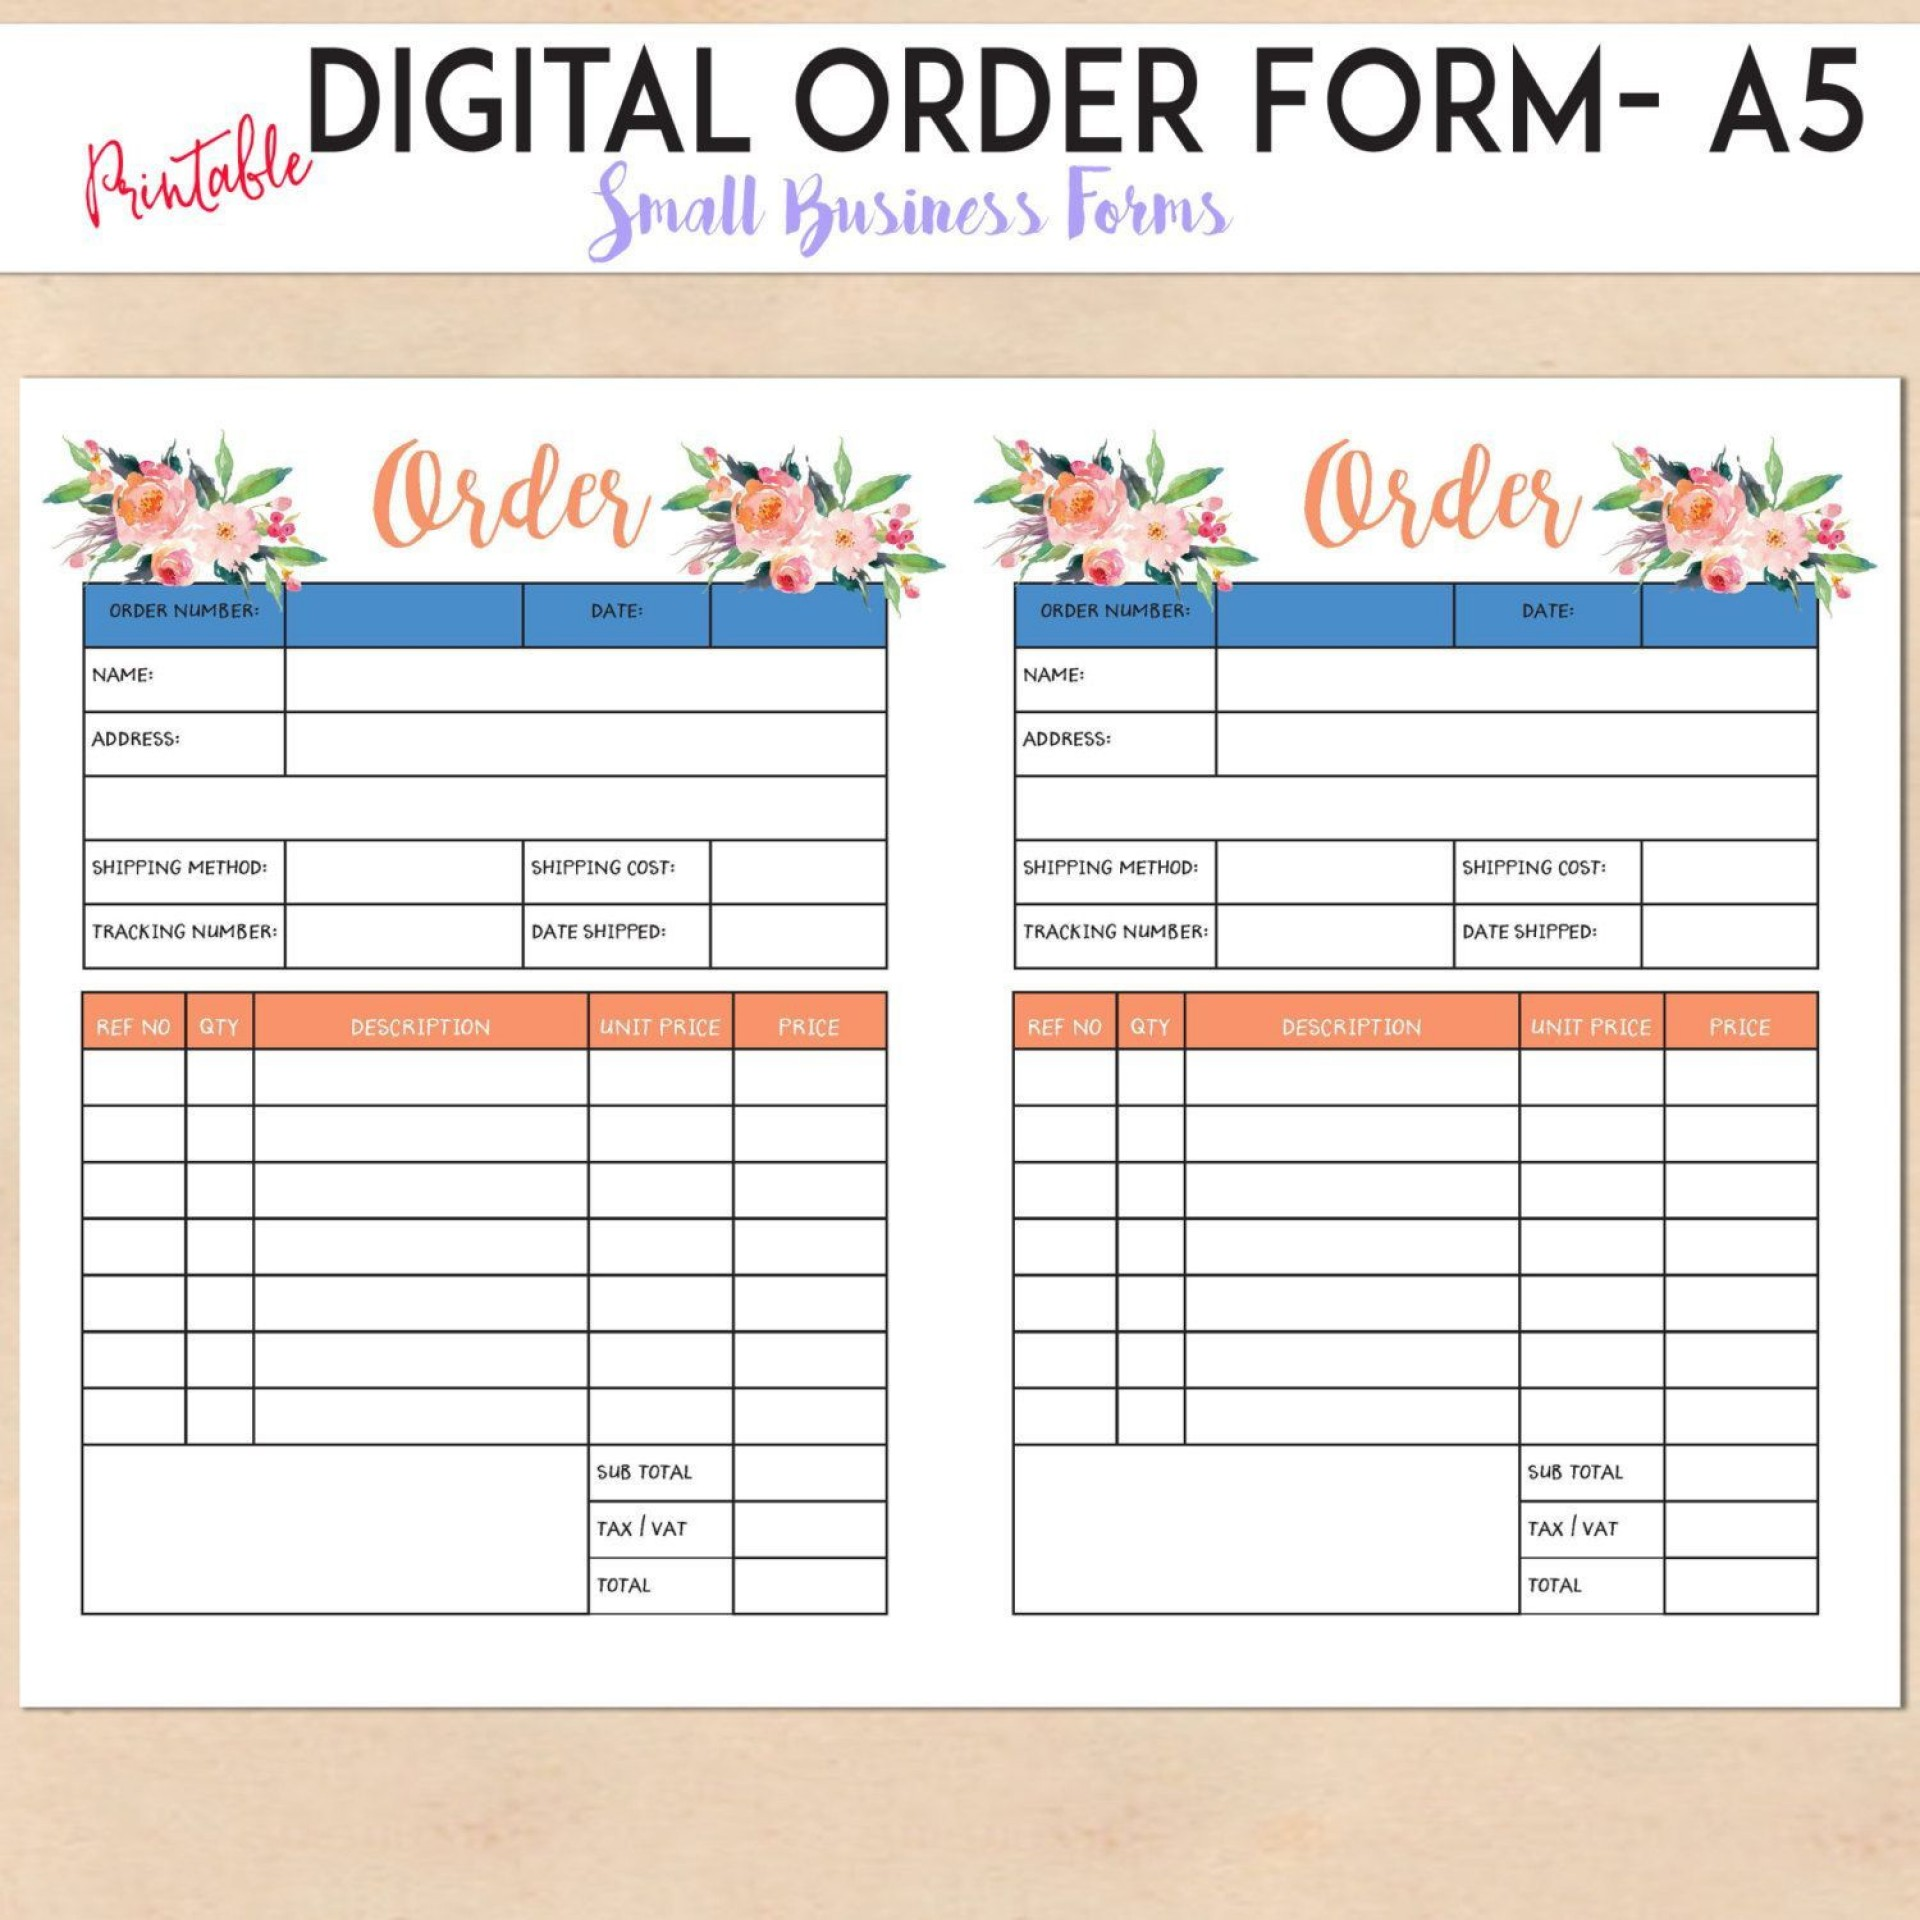 005 Incredible Custom Order Form Template Sample  Cake Clothing Work1920